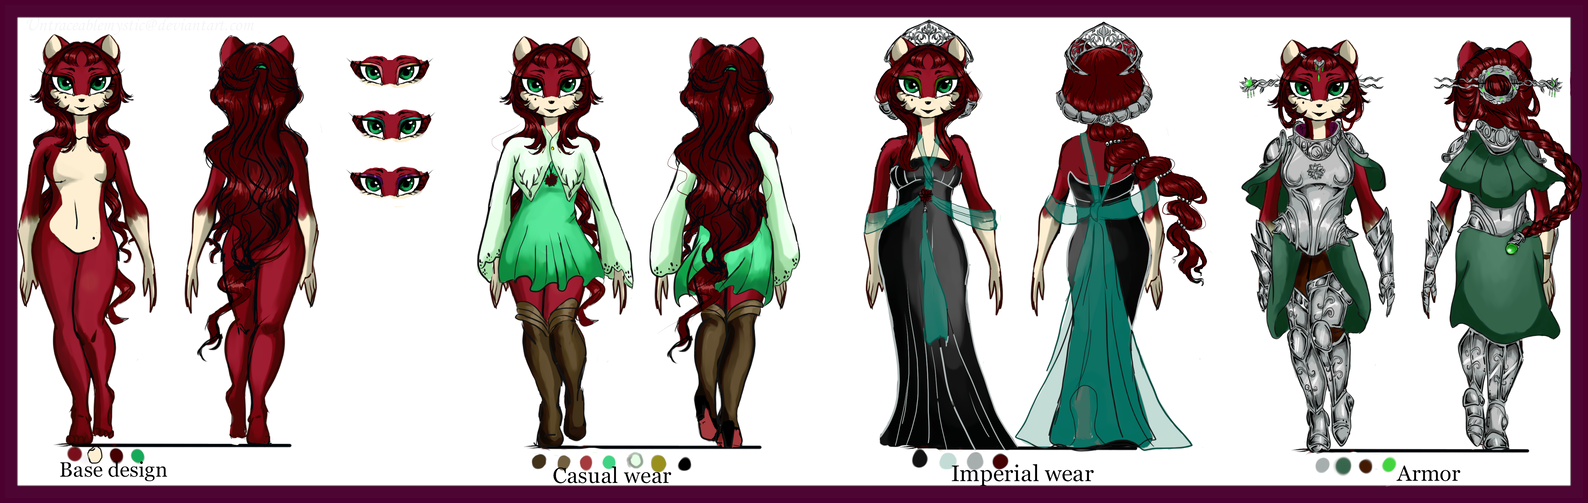 Yetta clothing reference by Untraceablemystic